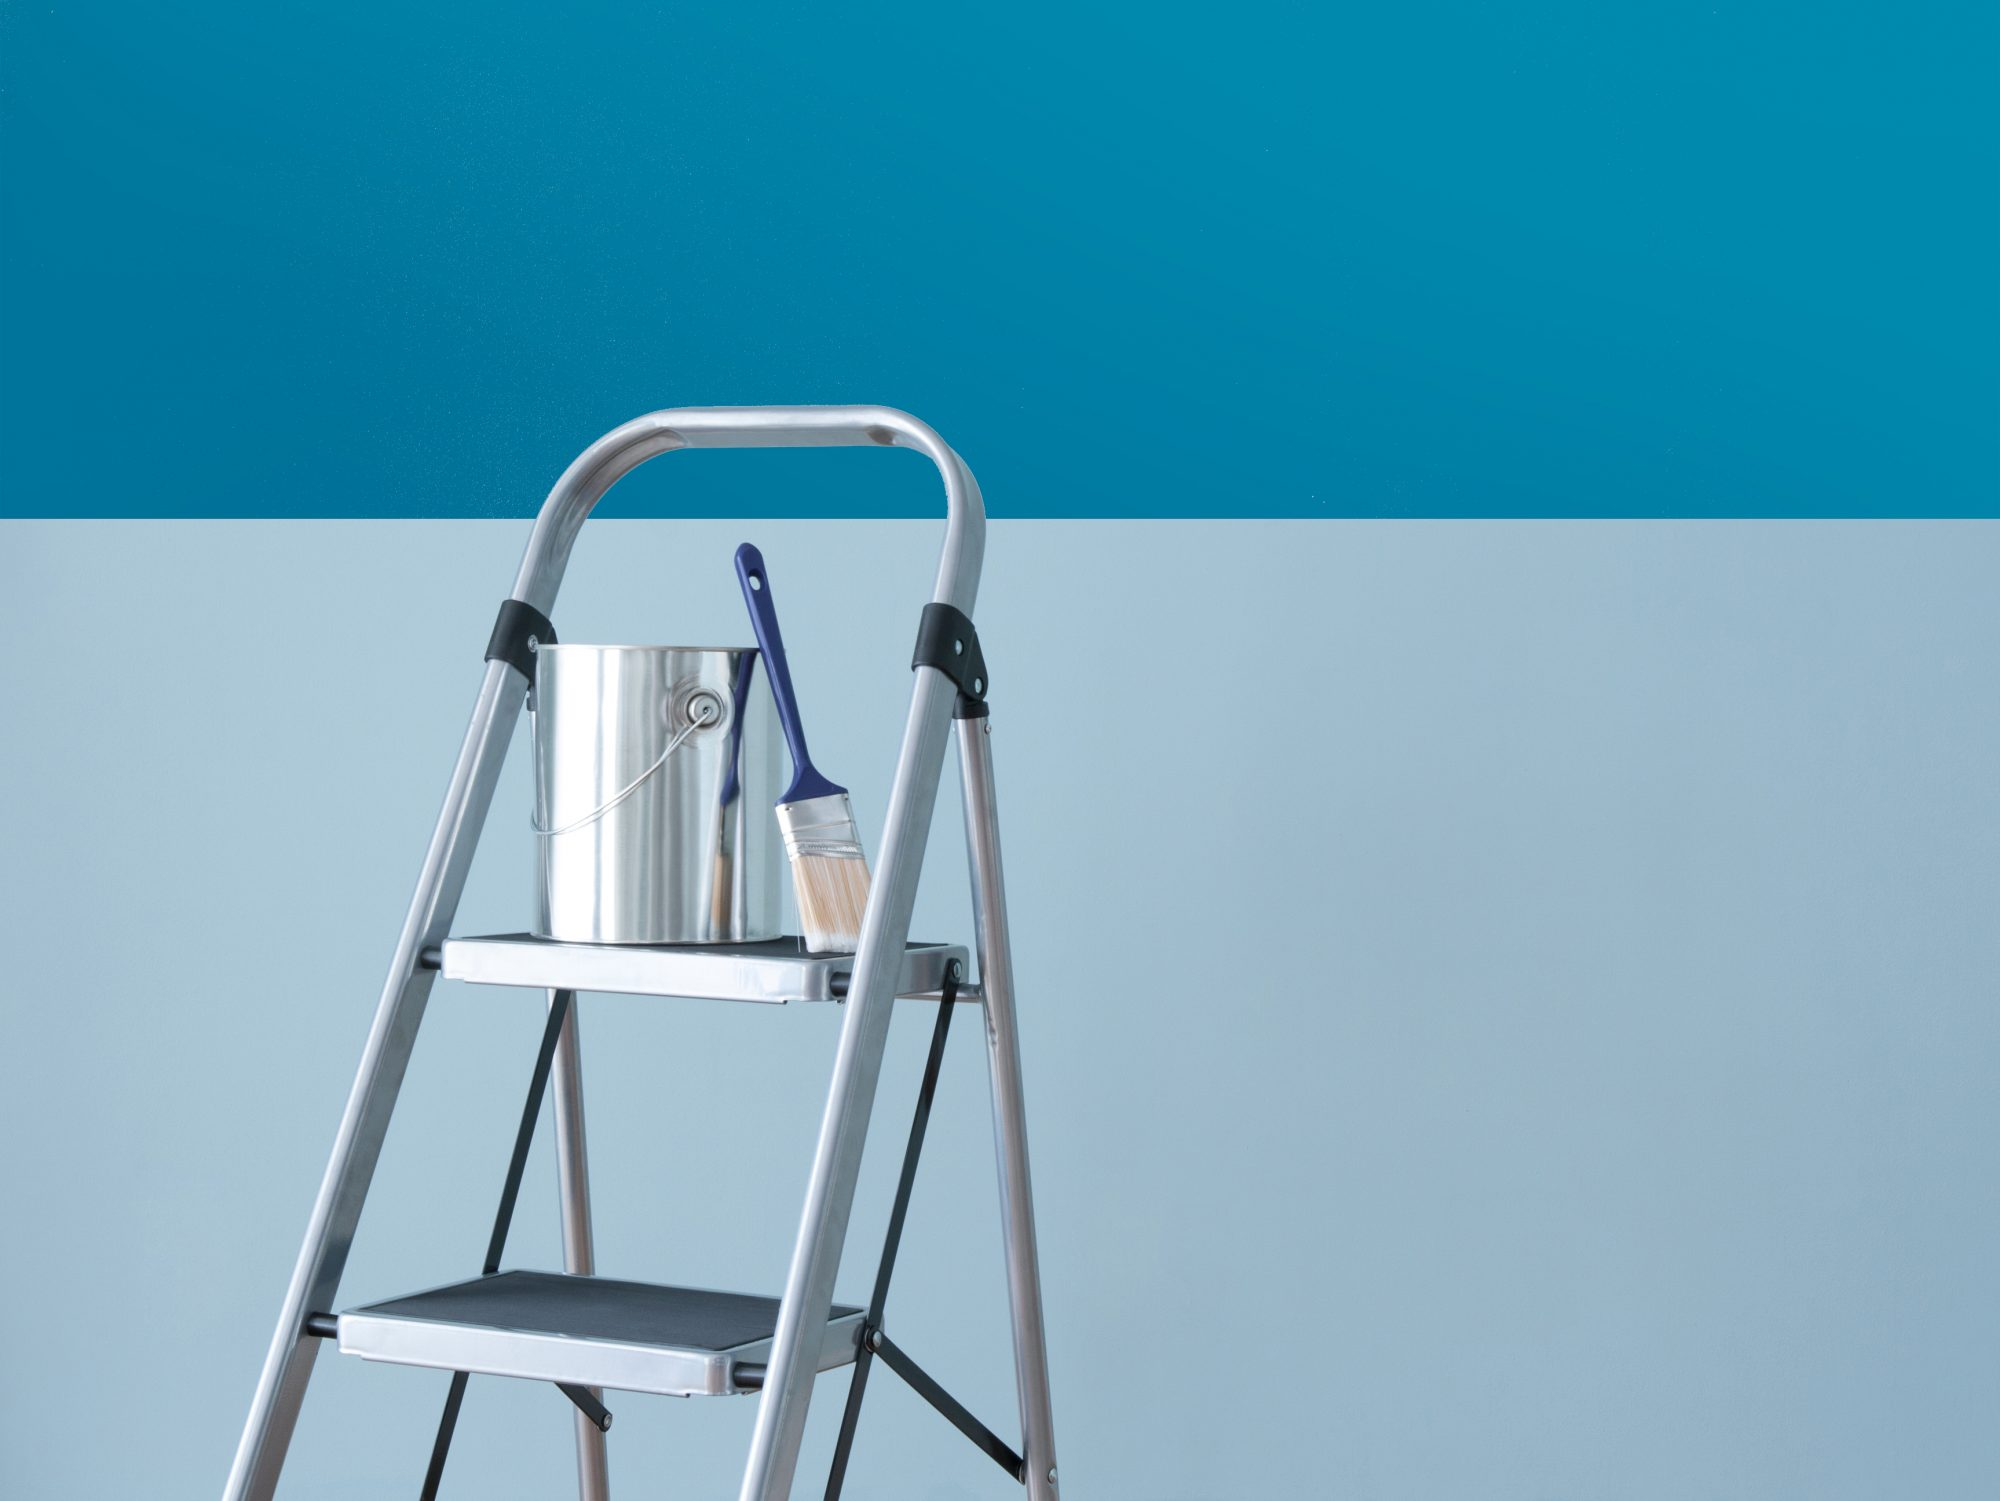 How to Paint a Ceiling, step ladder and paint can